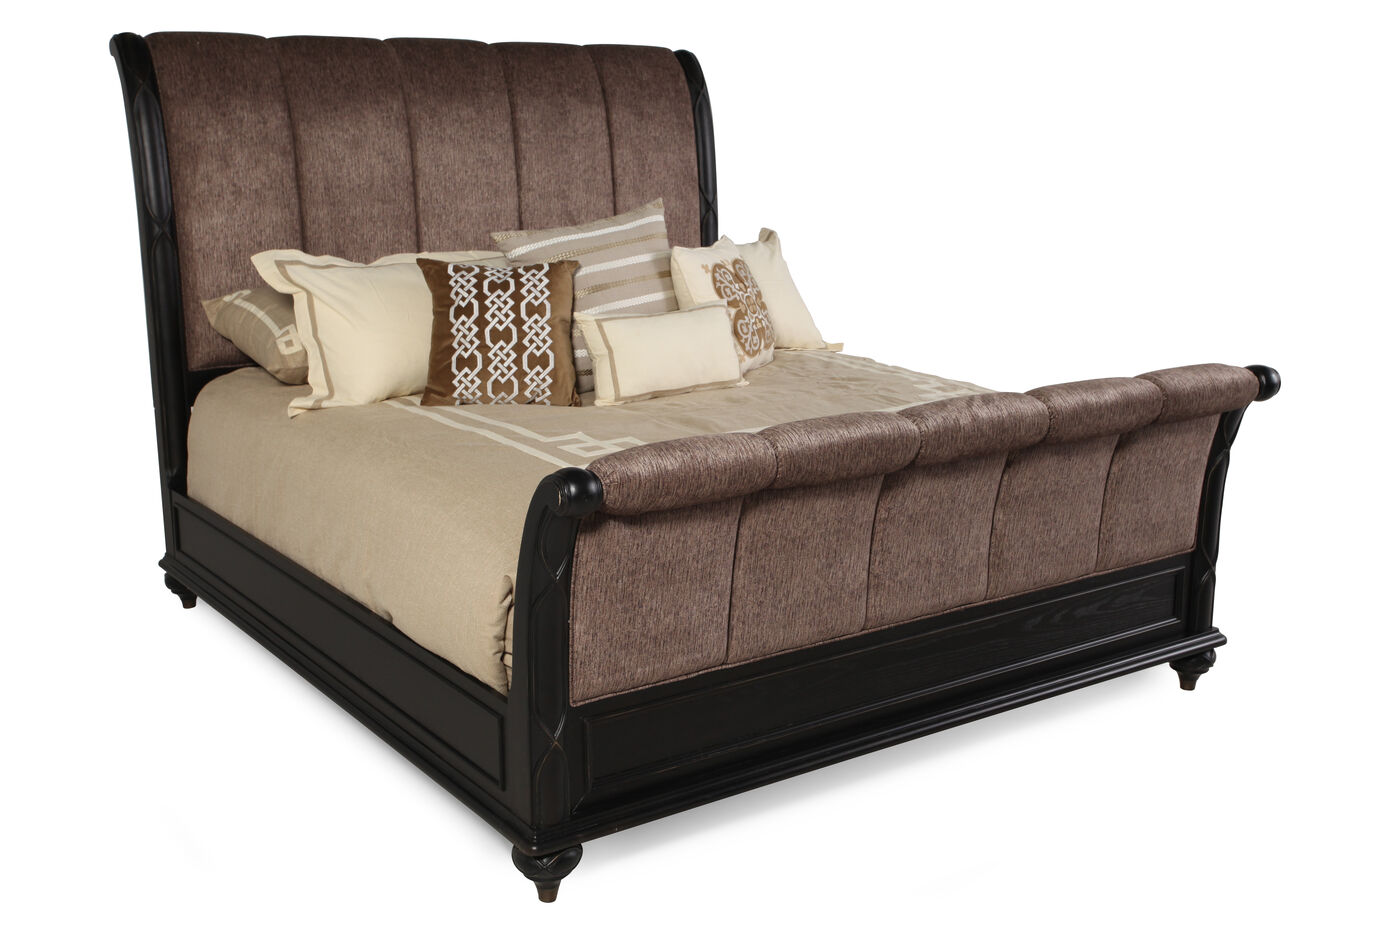 67 Channel Tufted Microfiber Sleigh Bed In Brown Mathis Brothers Furniture